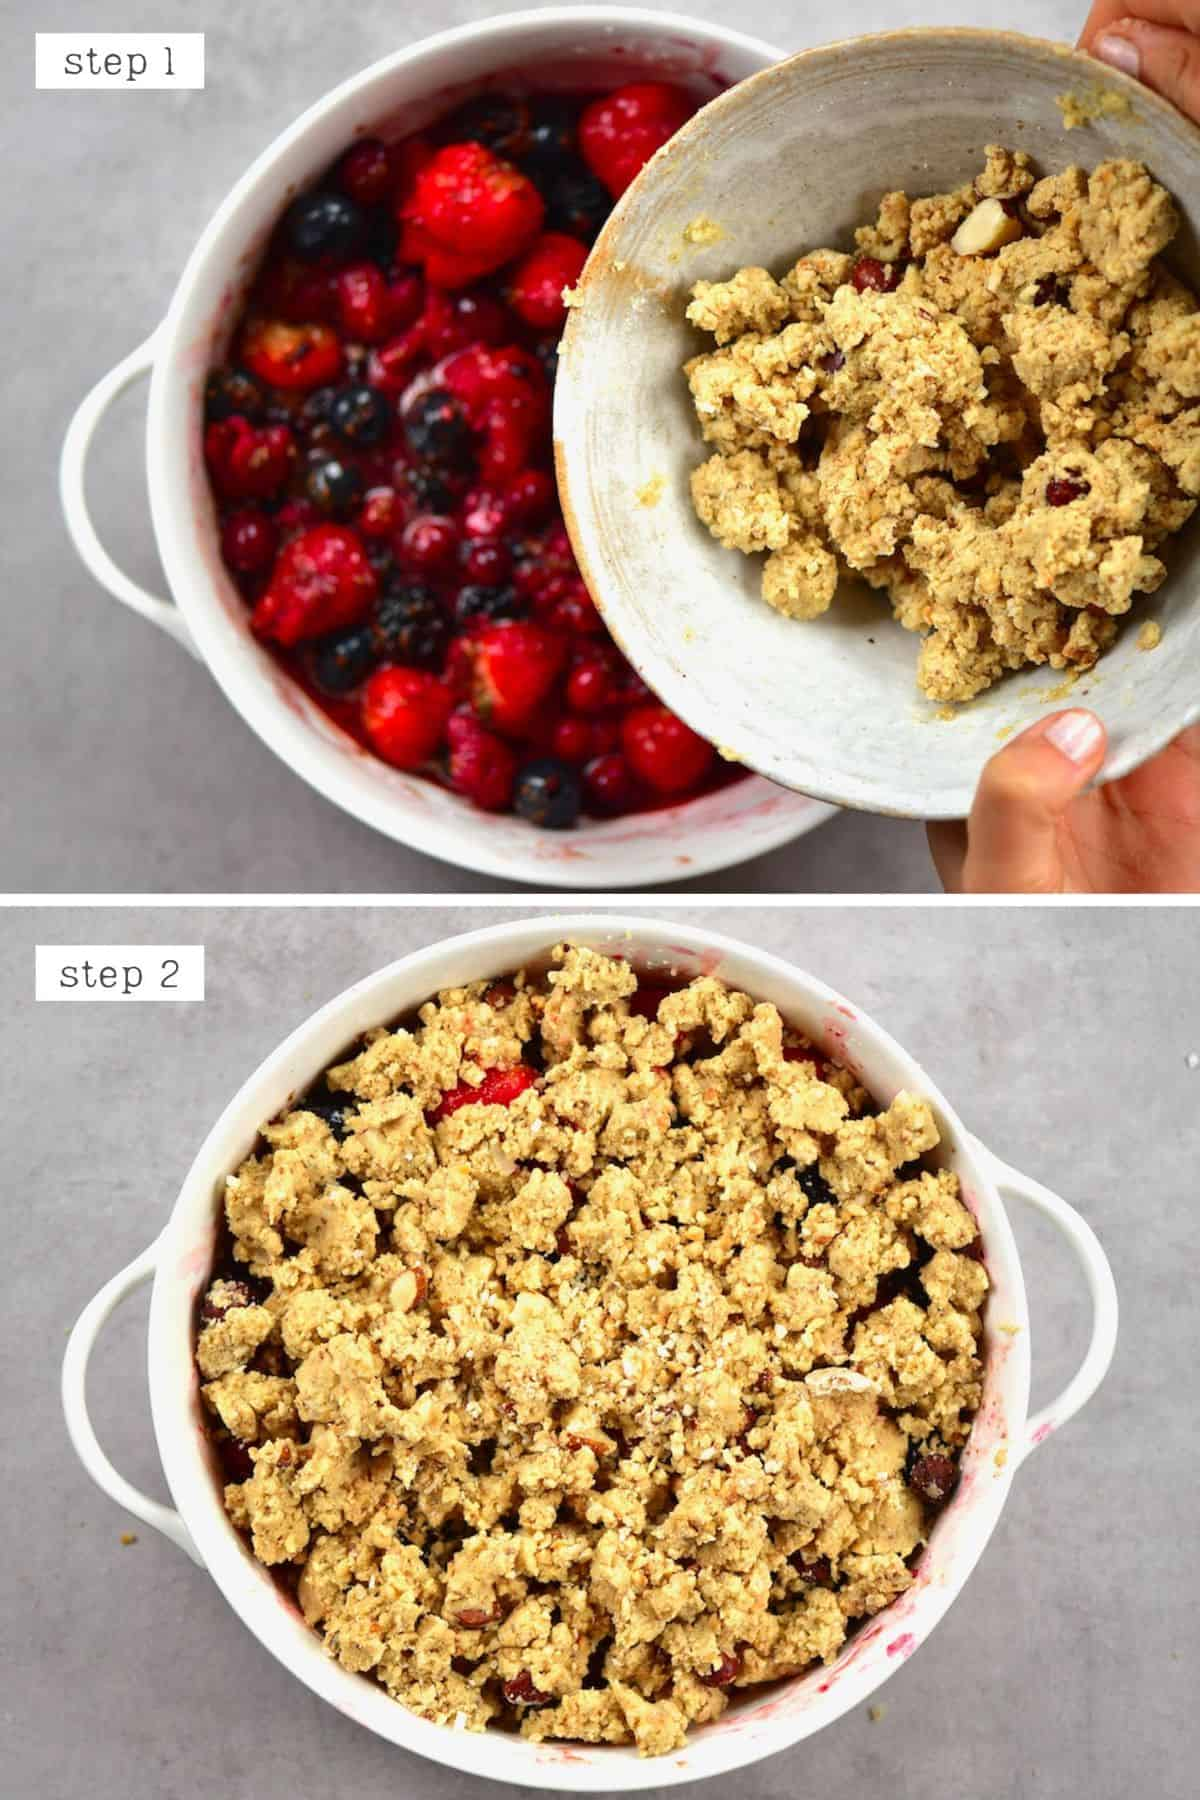 Steps for assembling berry crumble